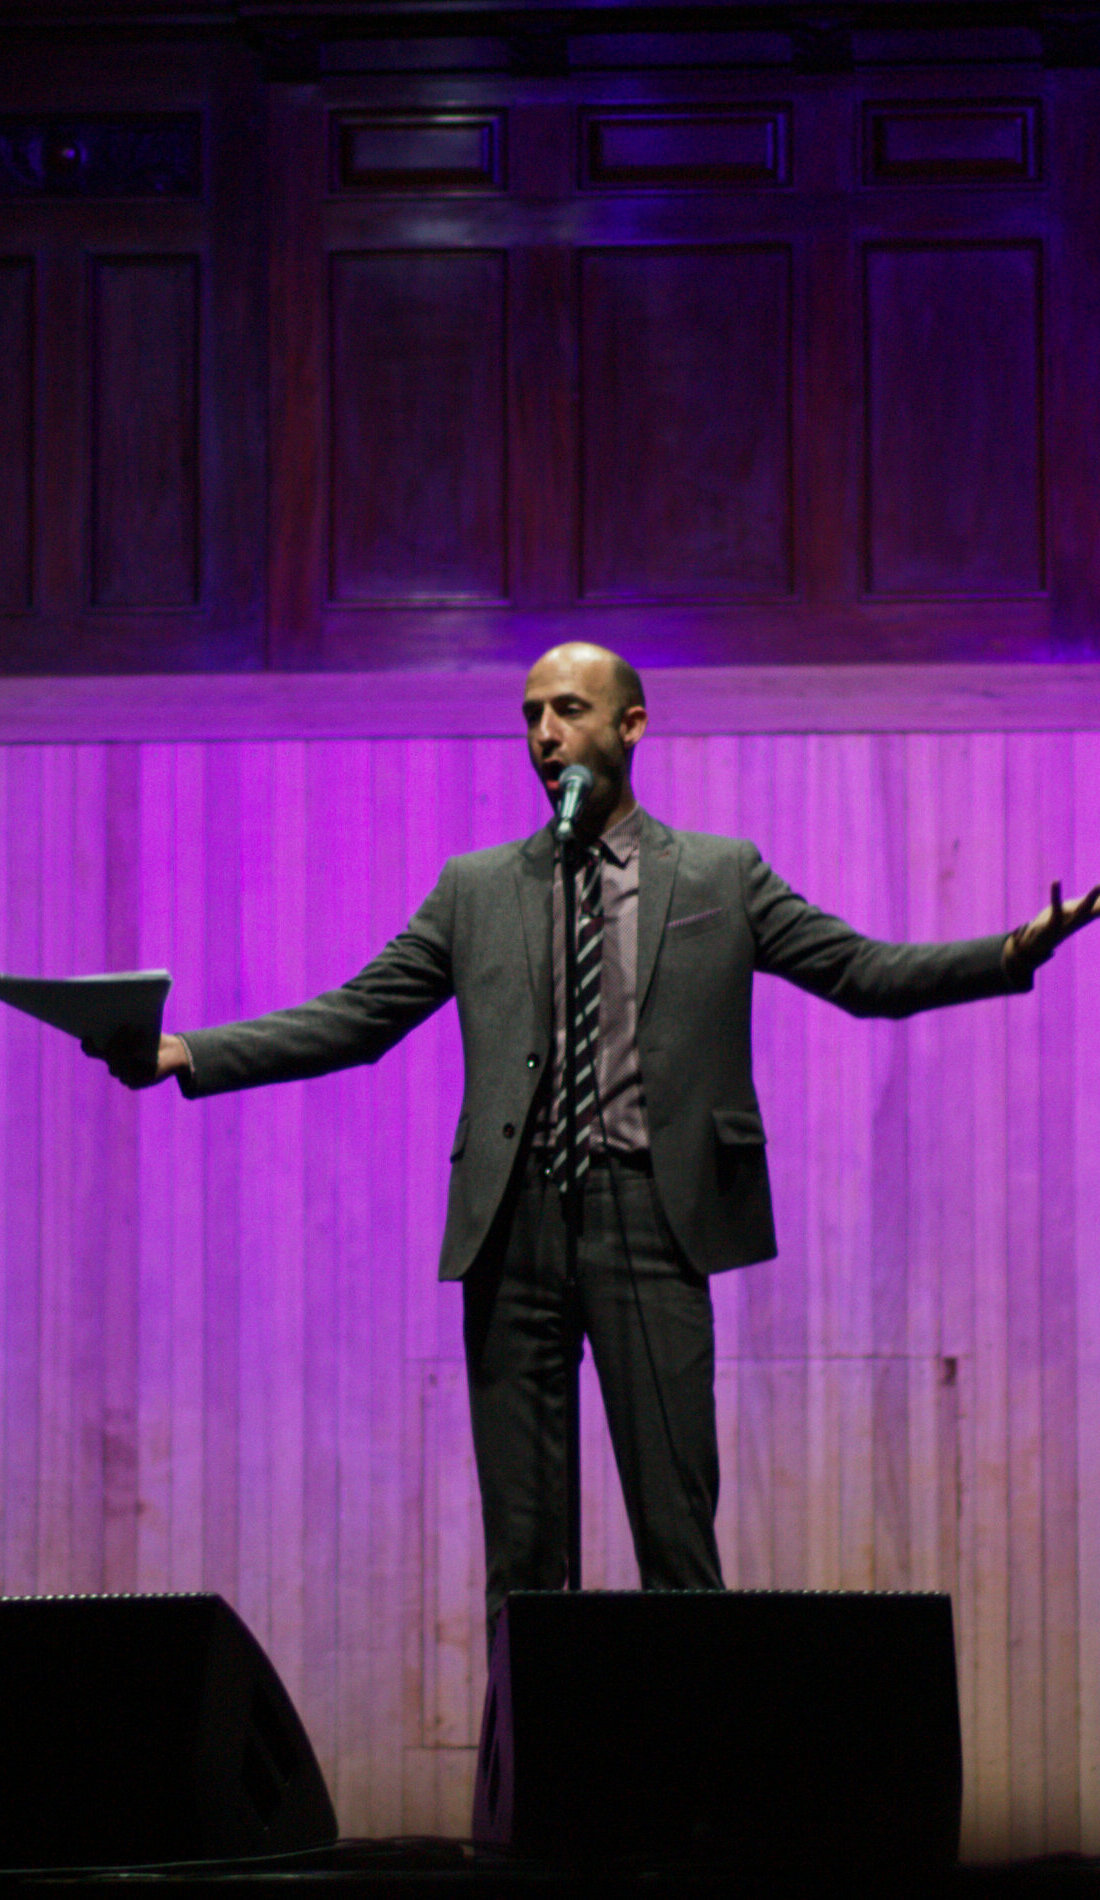 A Welcome To Night Vale live event